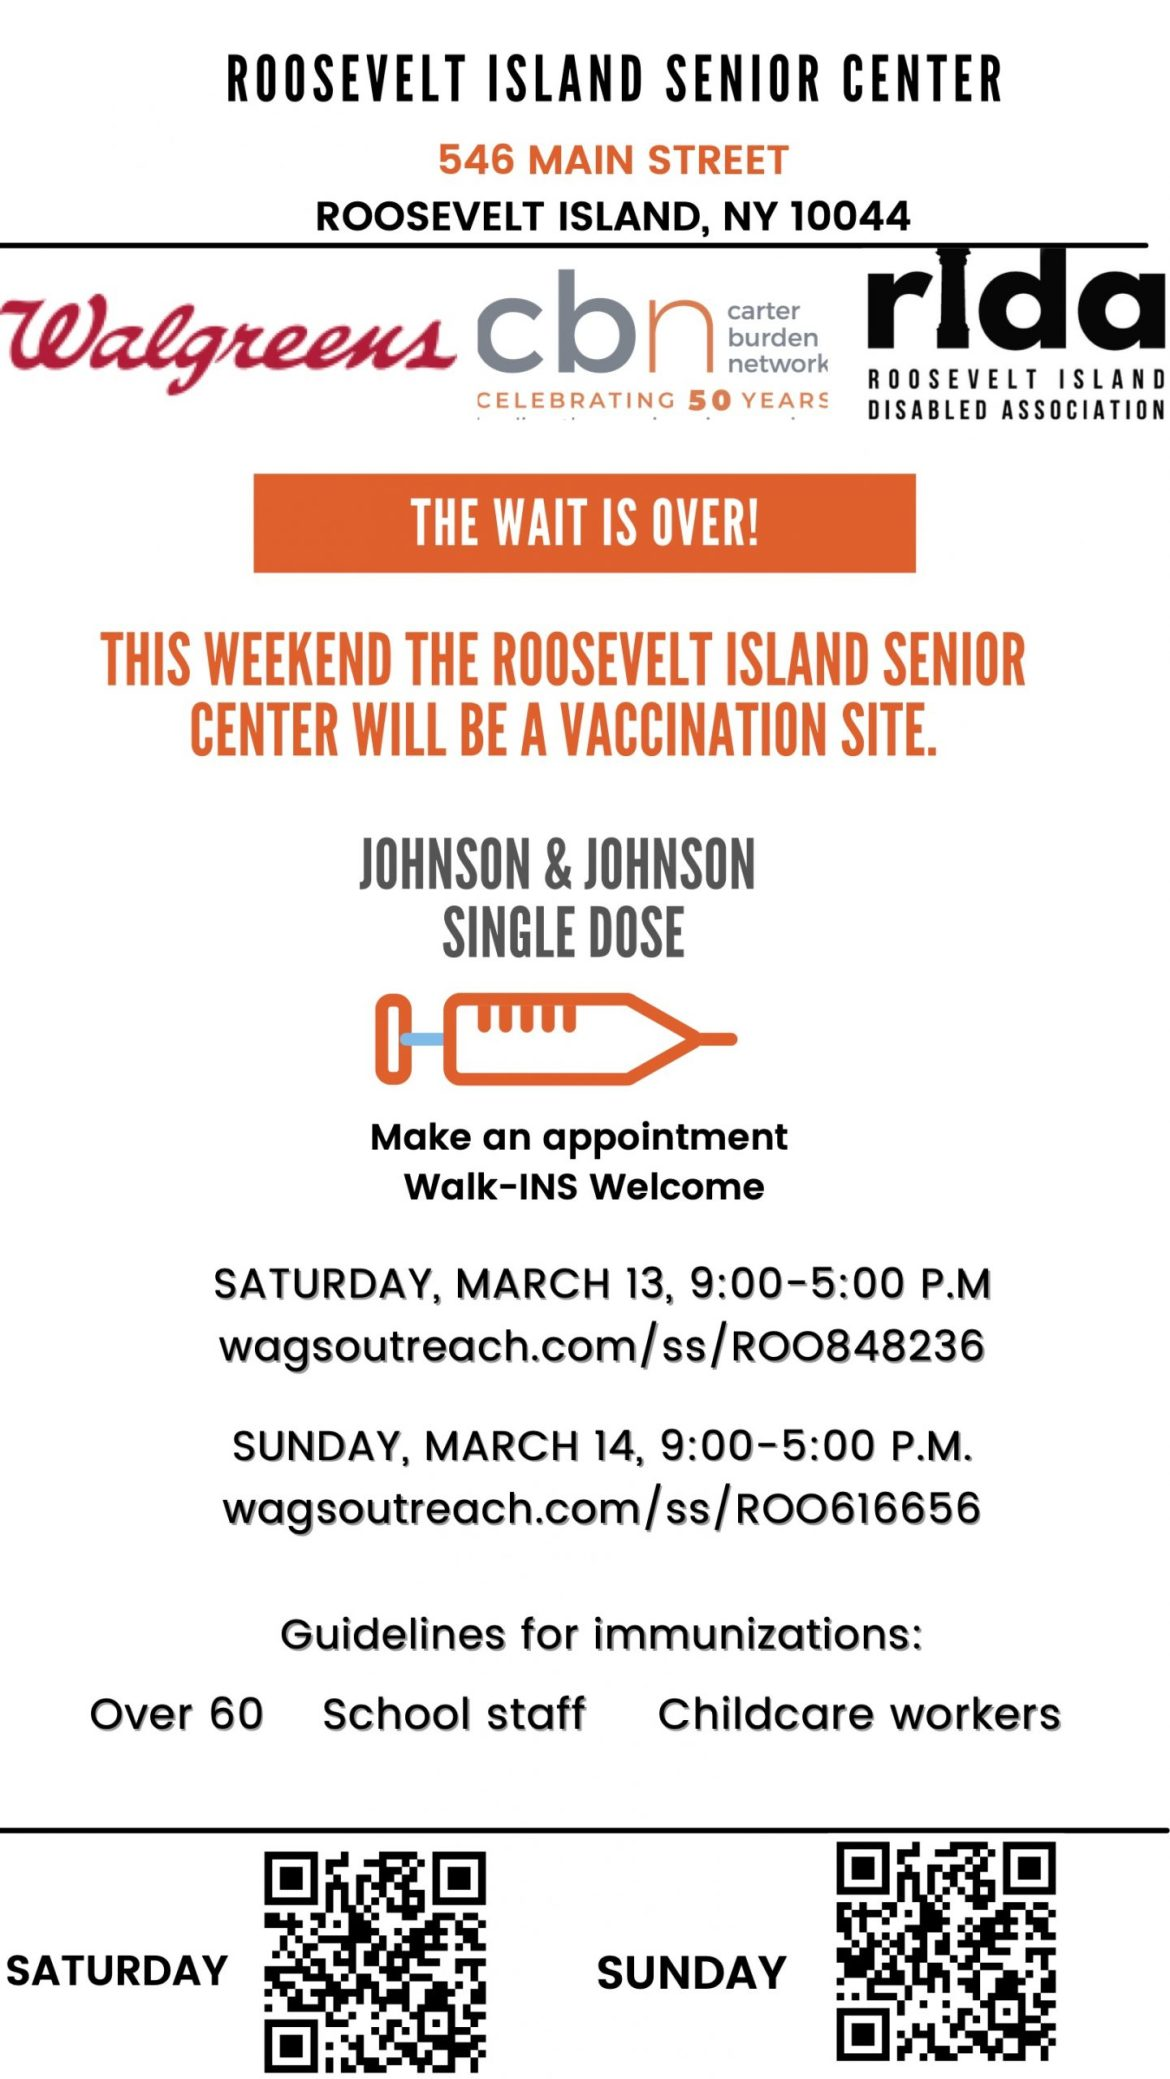 Breaking News: Roosevelt Island Senior Center Is A Vaccine Site, This weekend